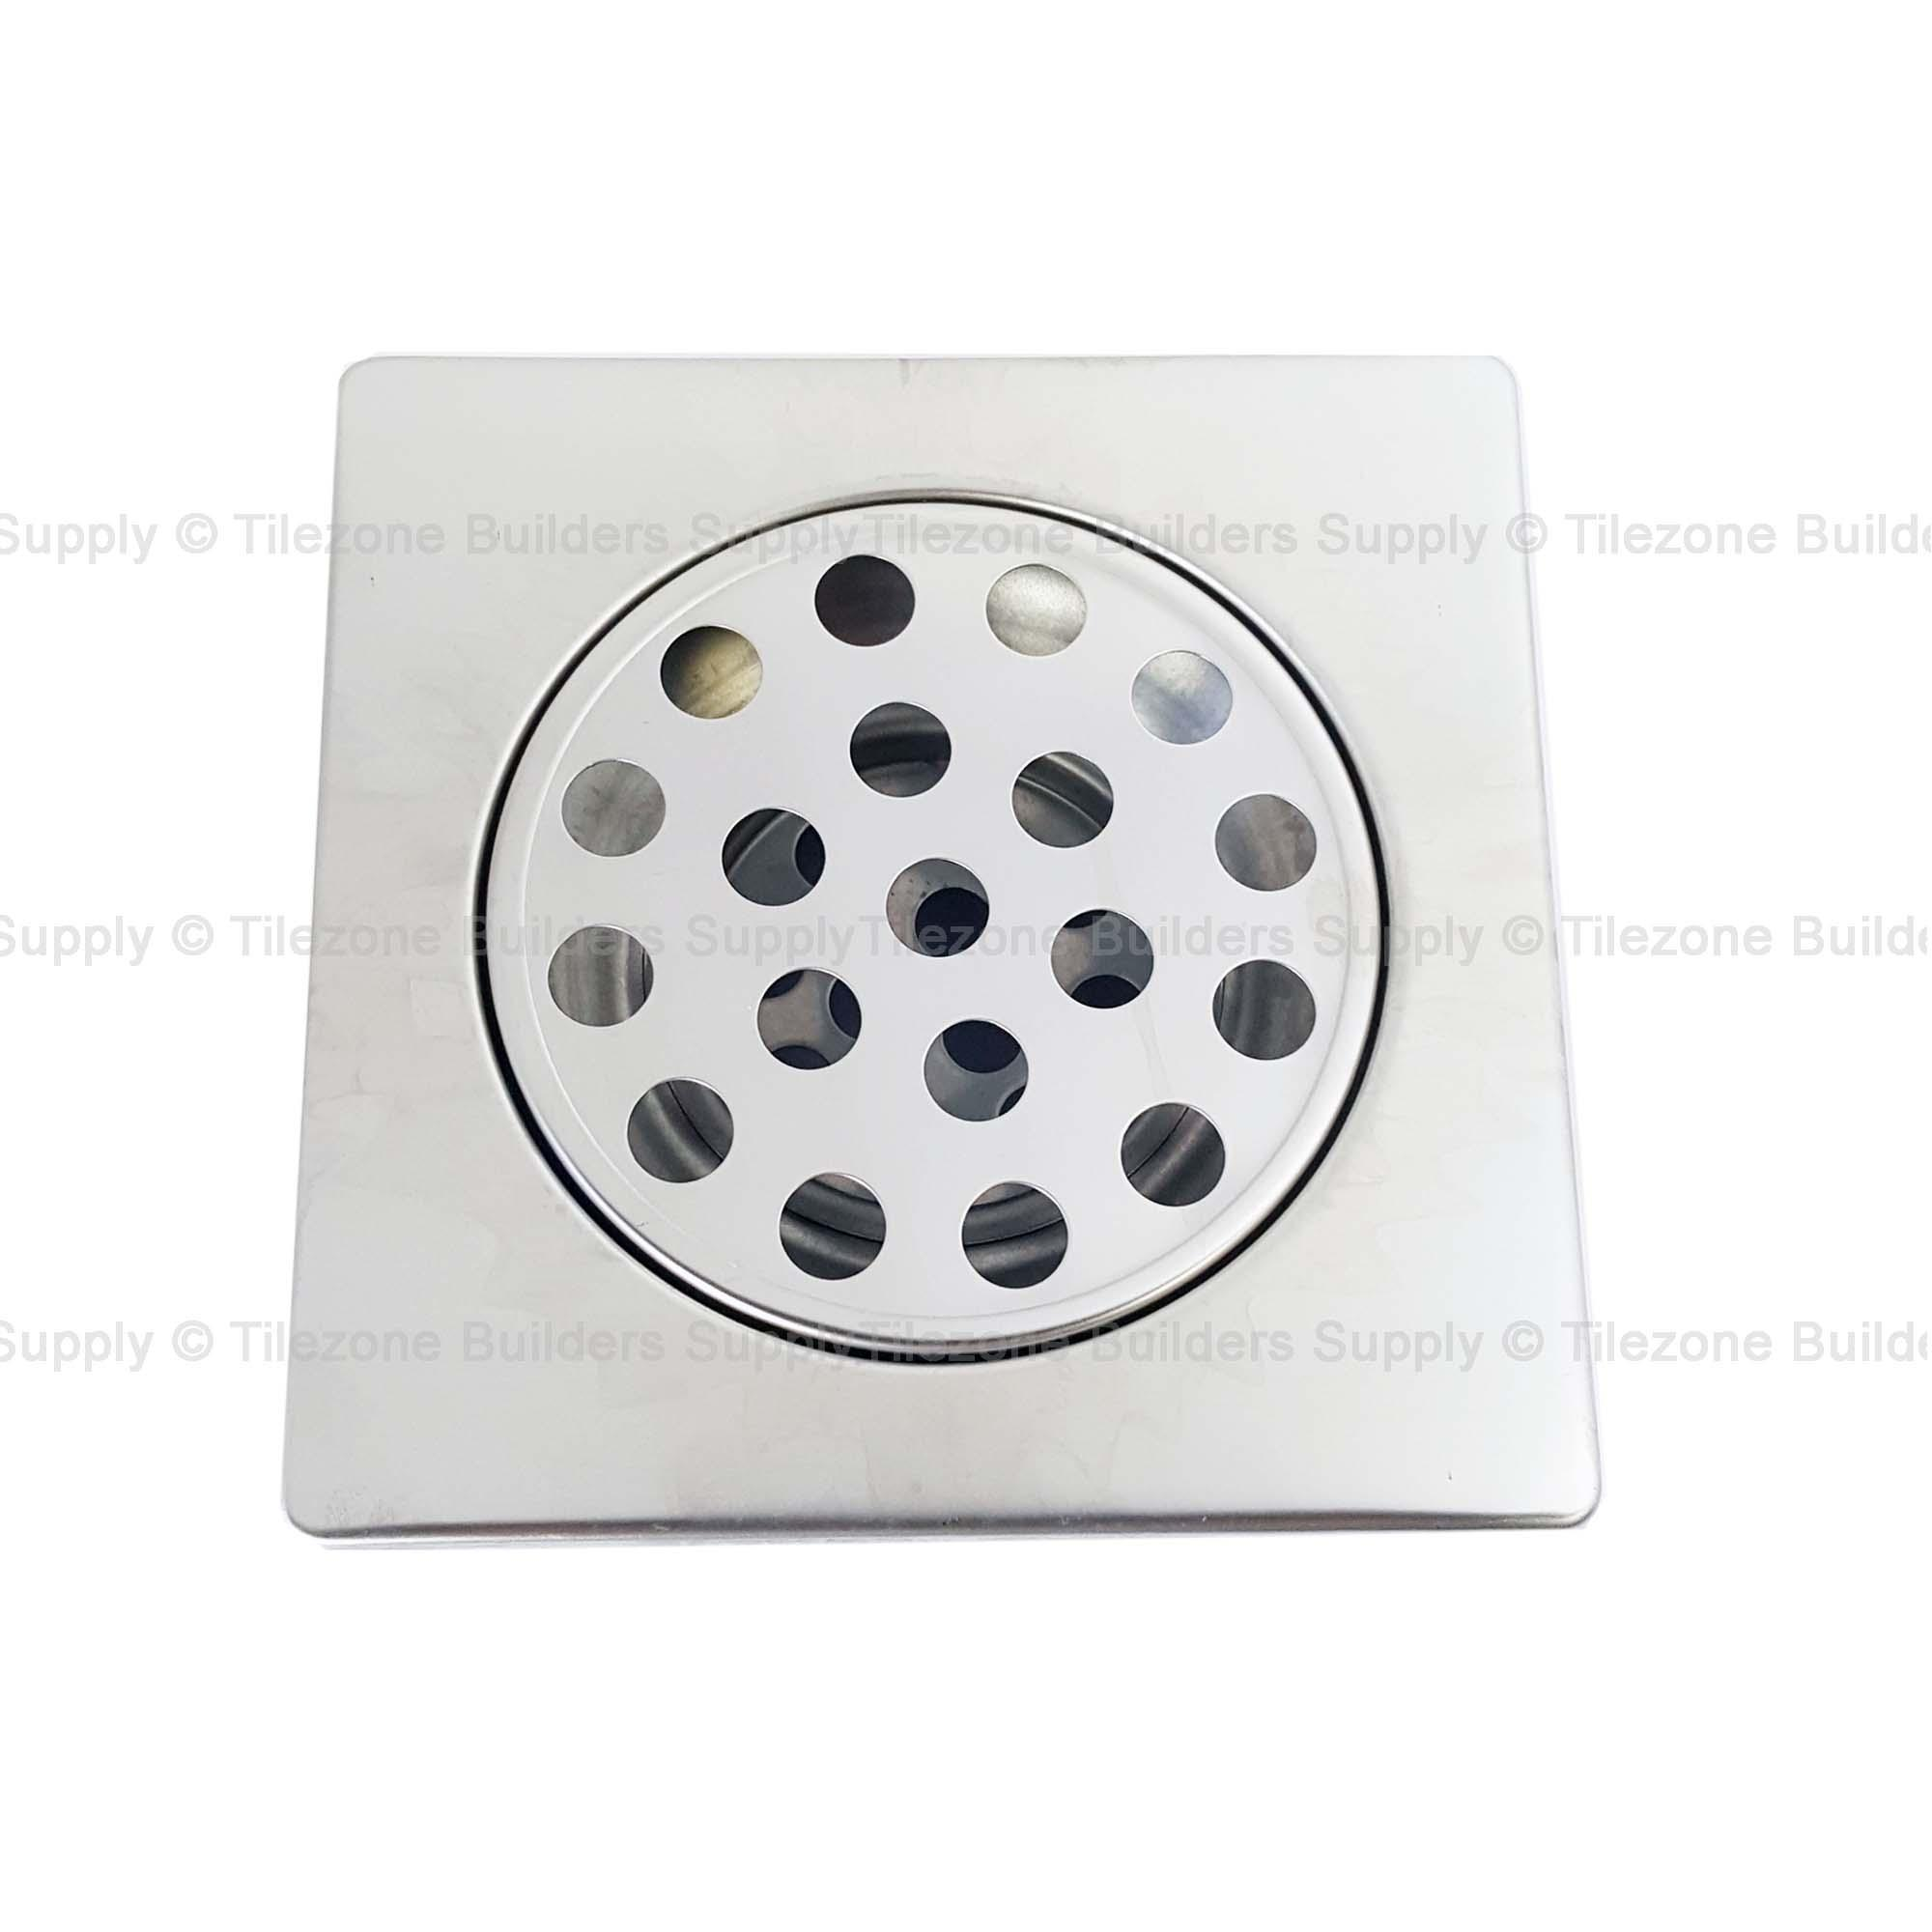 Tz 4 X Inches Stainless Floor Drain